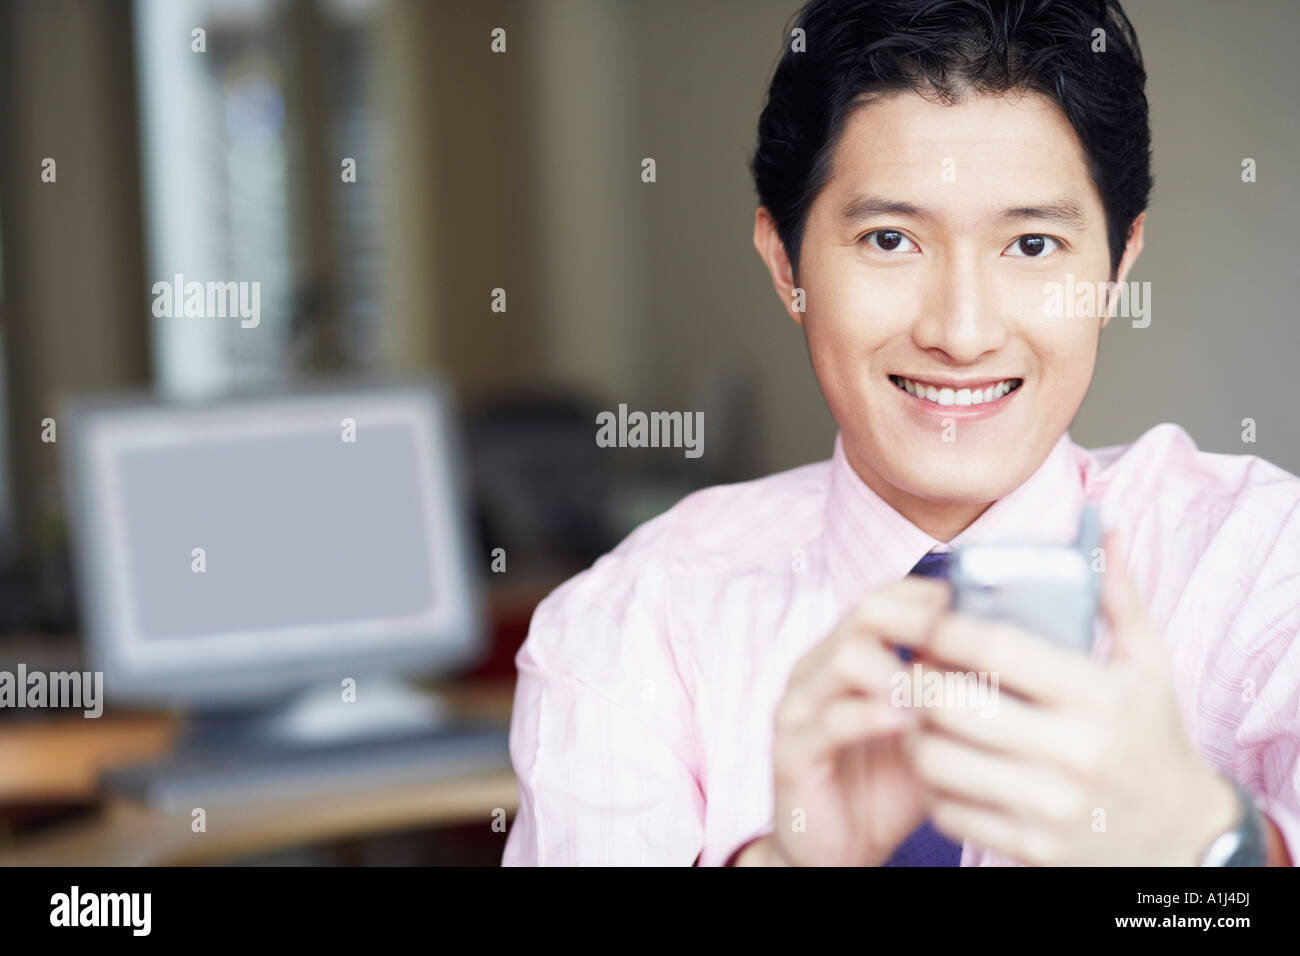 Portrait of a businessman operating a personal data assistant with a digitized pen and smiling - Stock Image